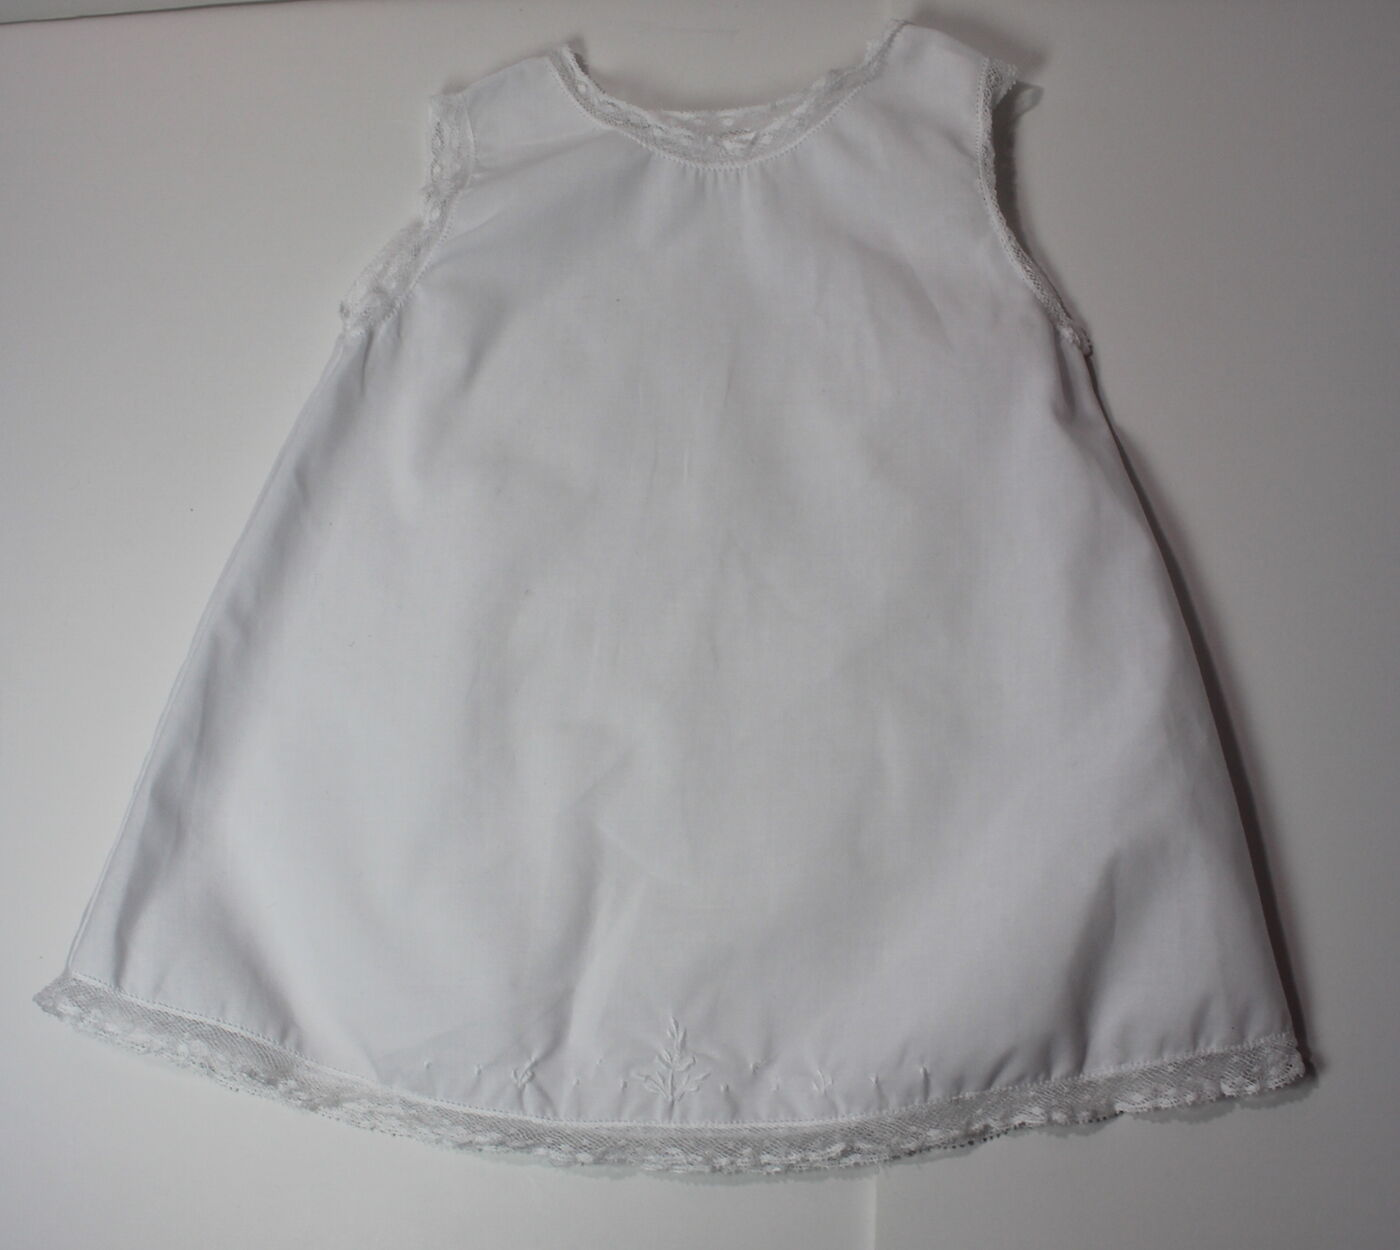 9 month white dress ith feathers